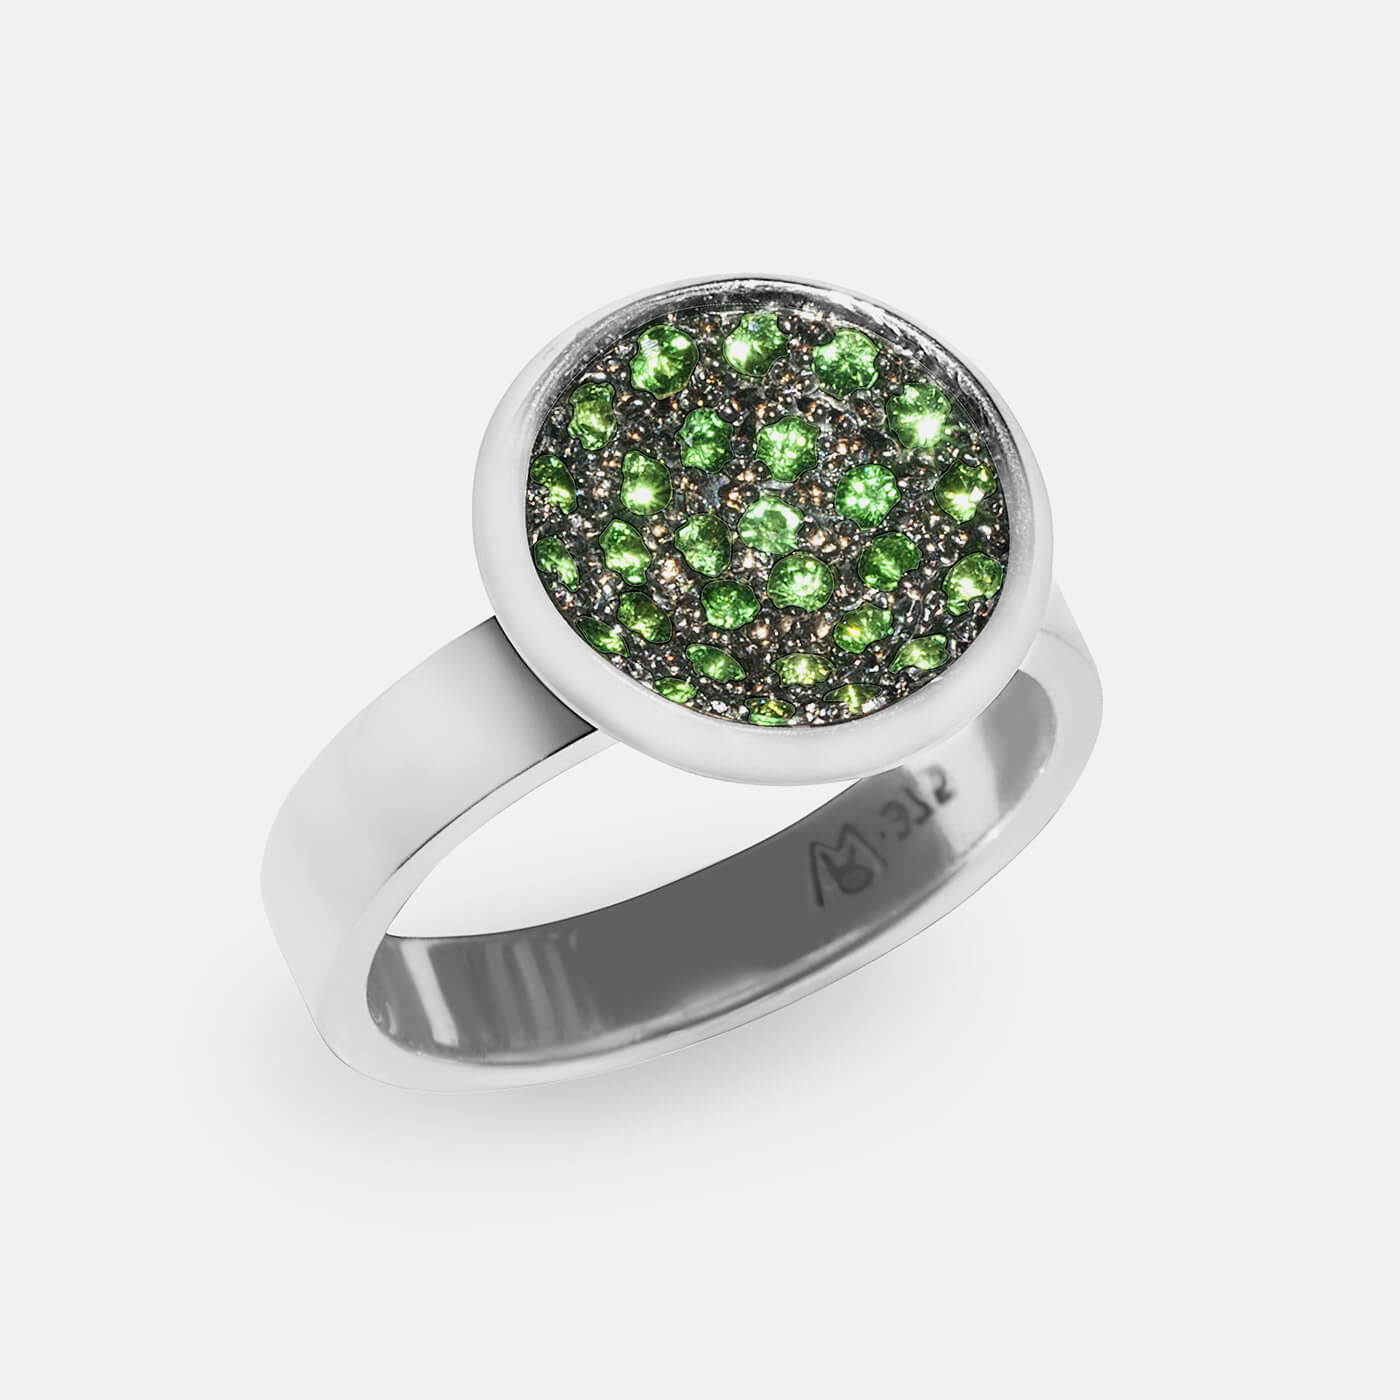 Dreaming in Green Wedding Ring